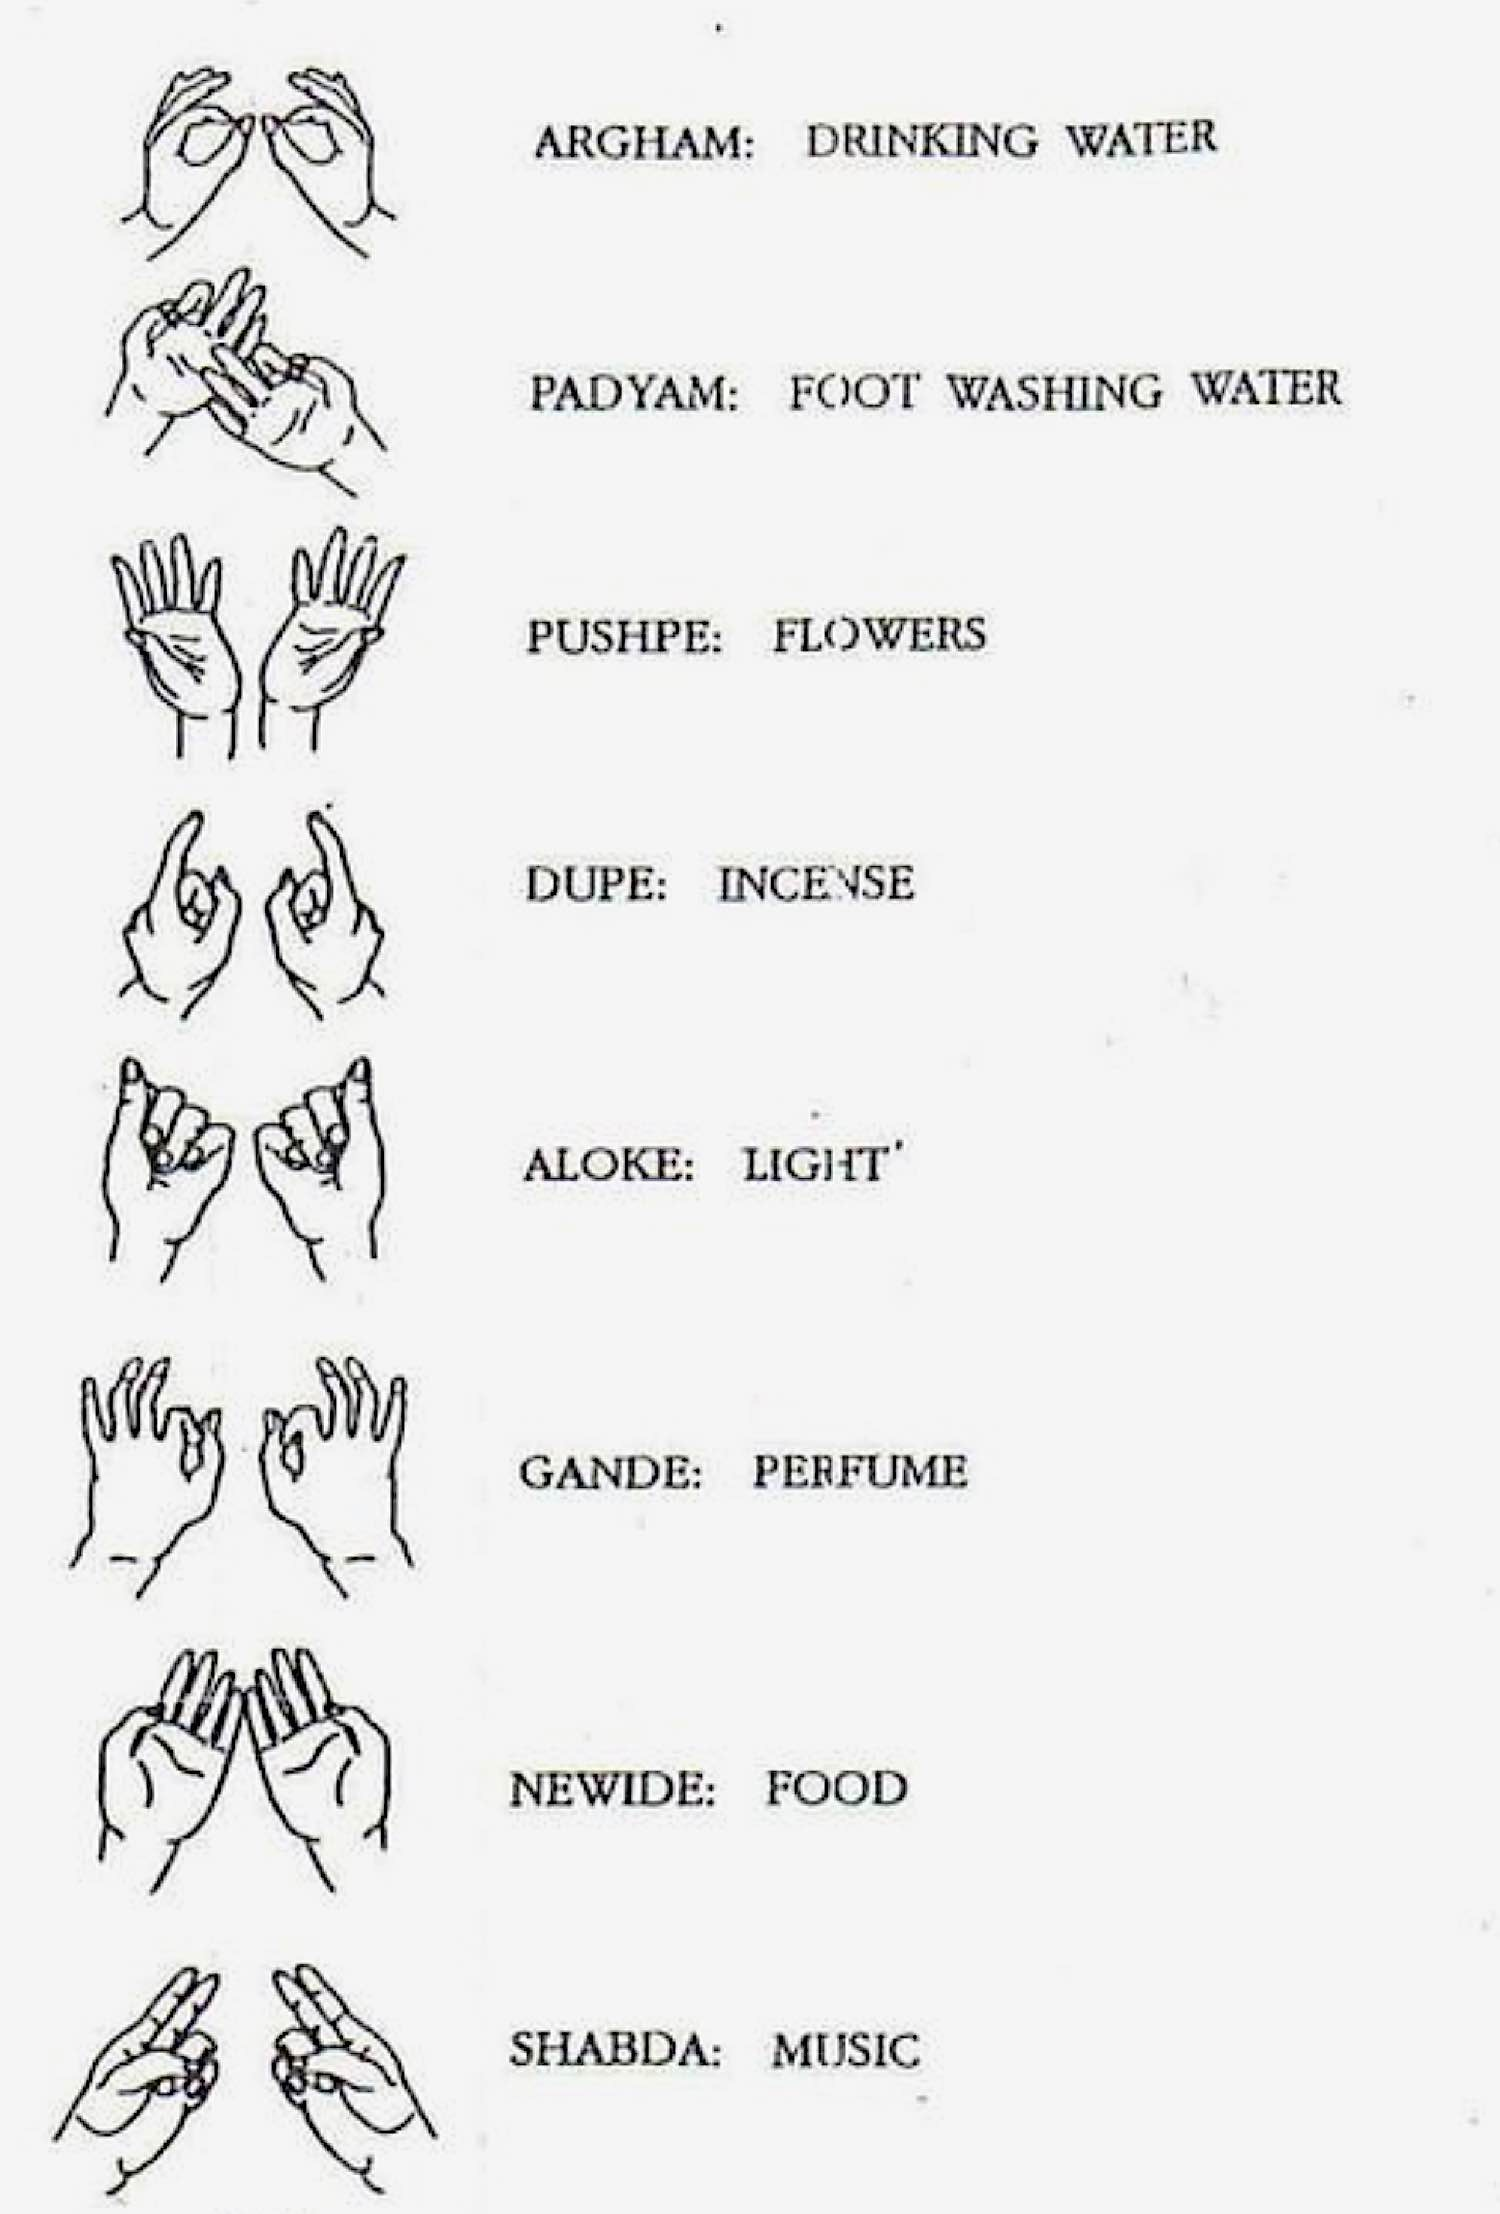 Buddha Weekly Hand Mudras for offerings Buddhism